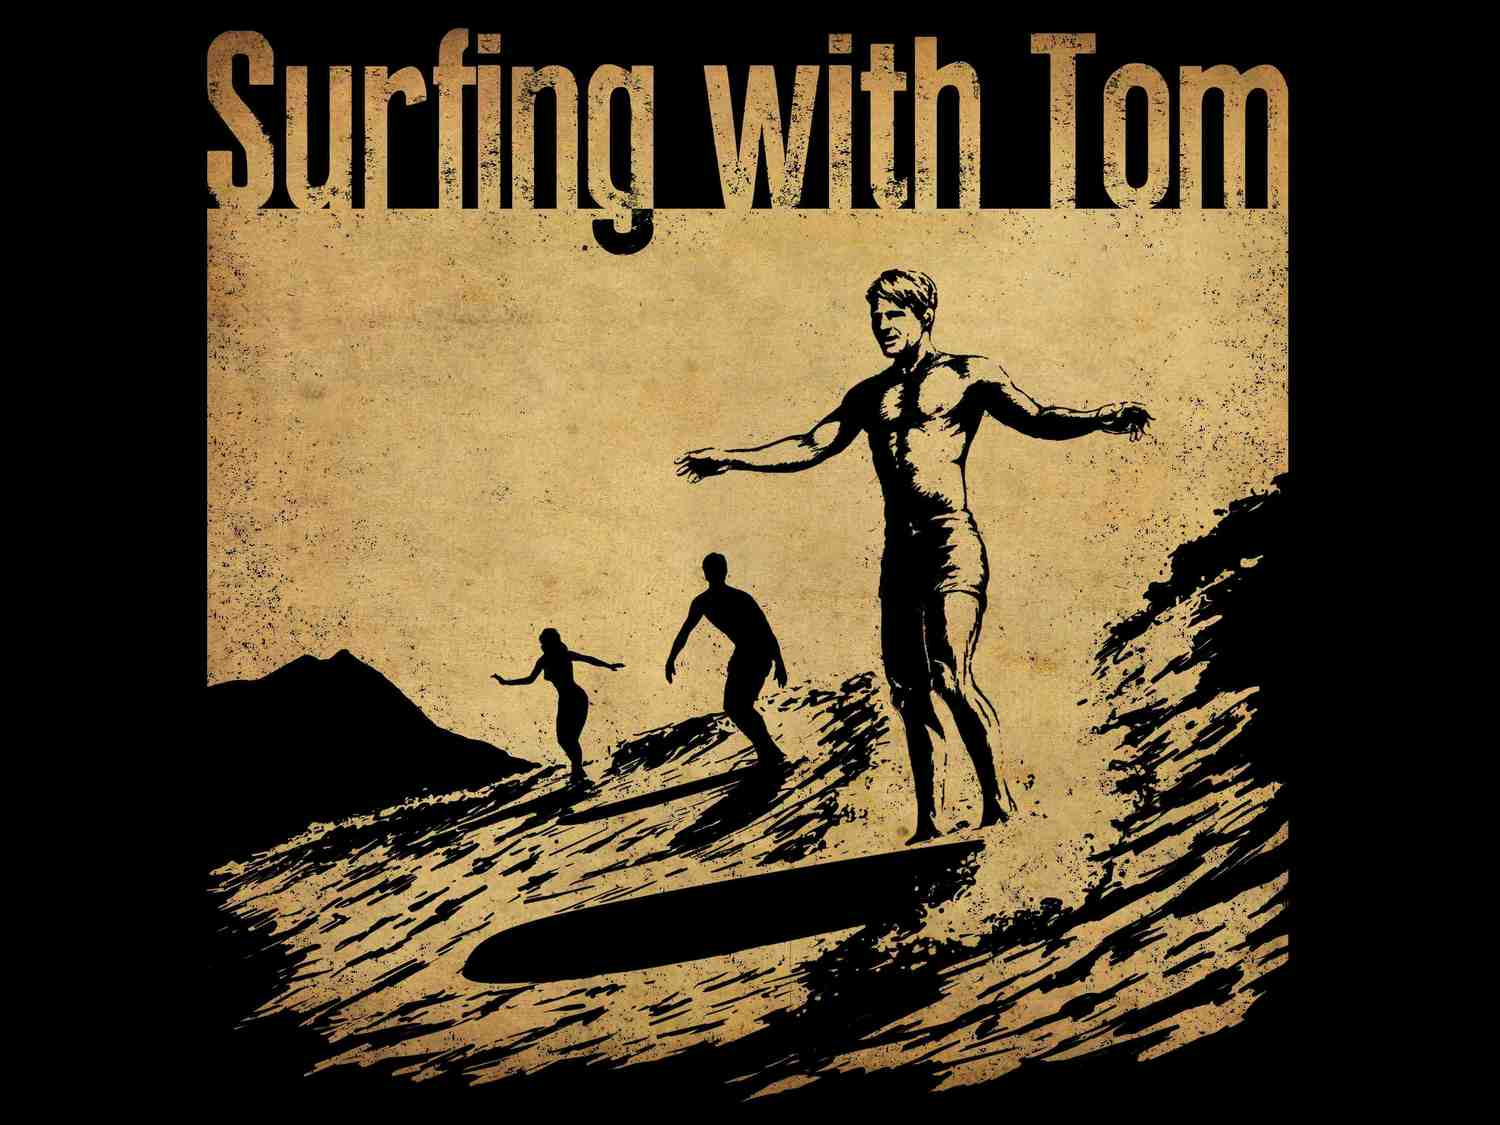 Surfing with Tom